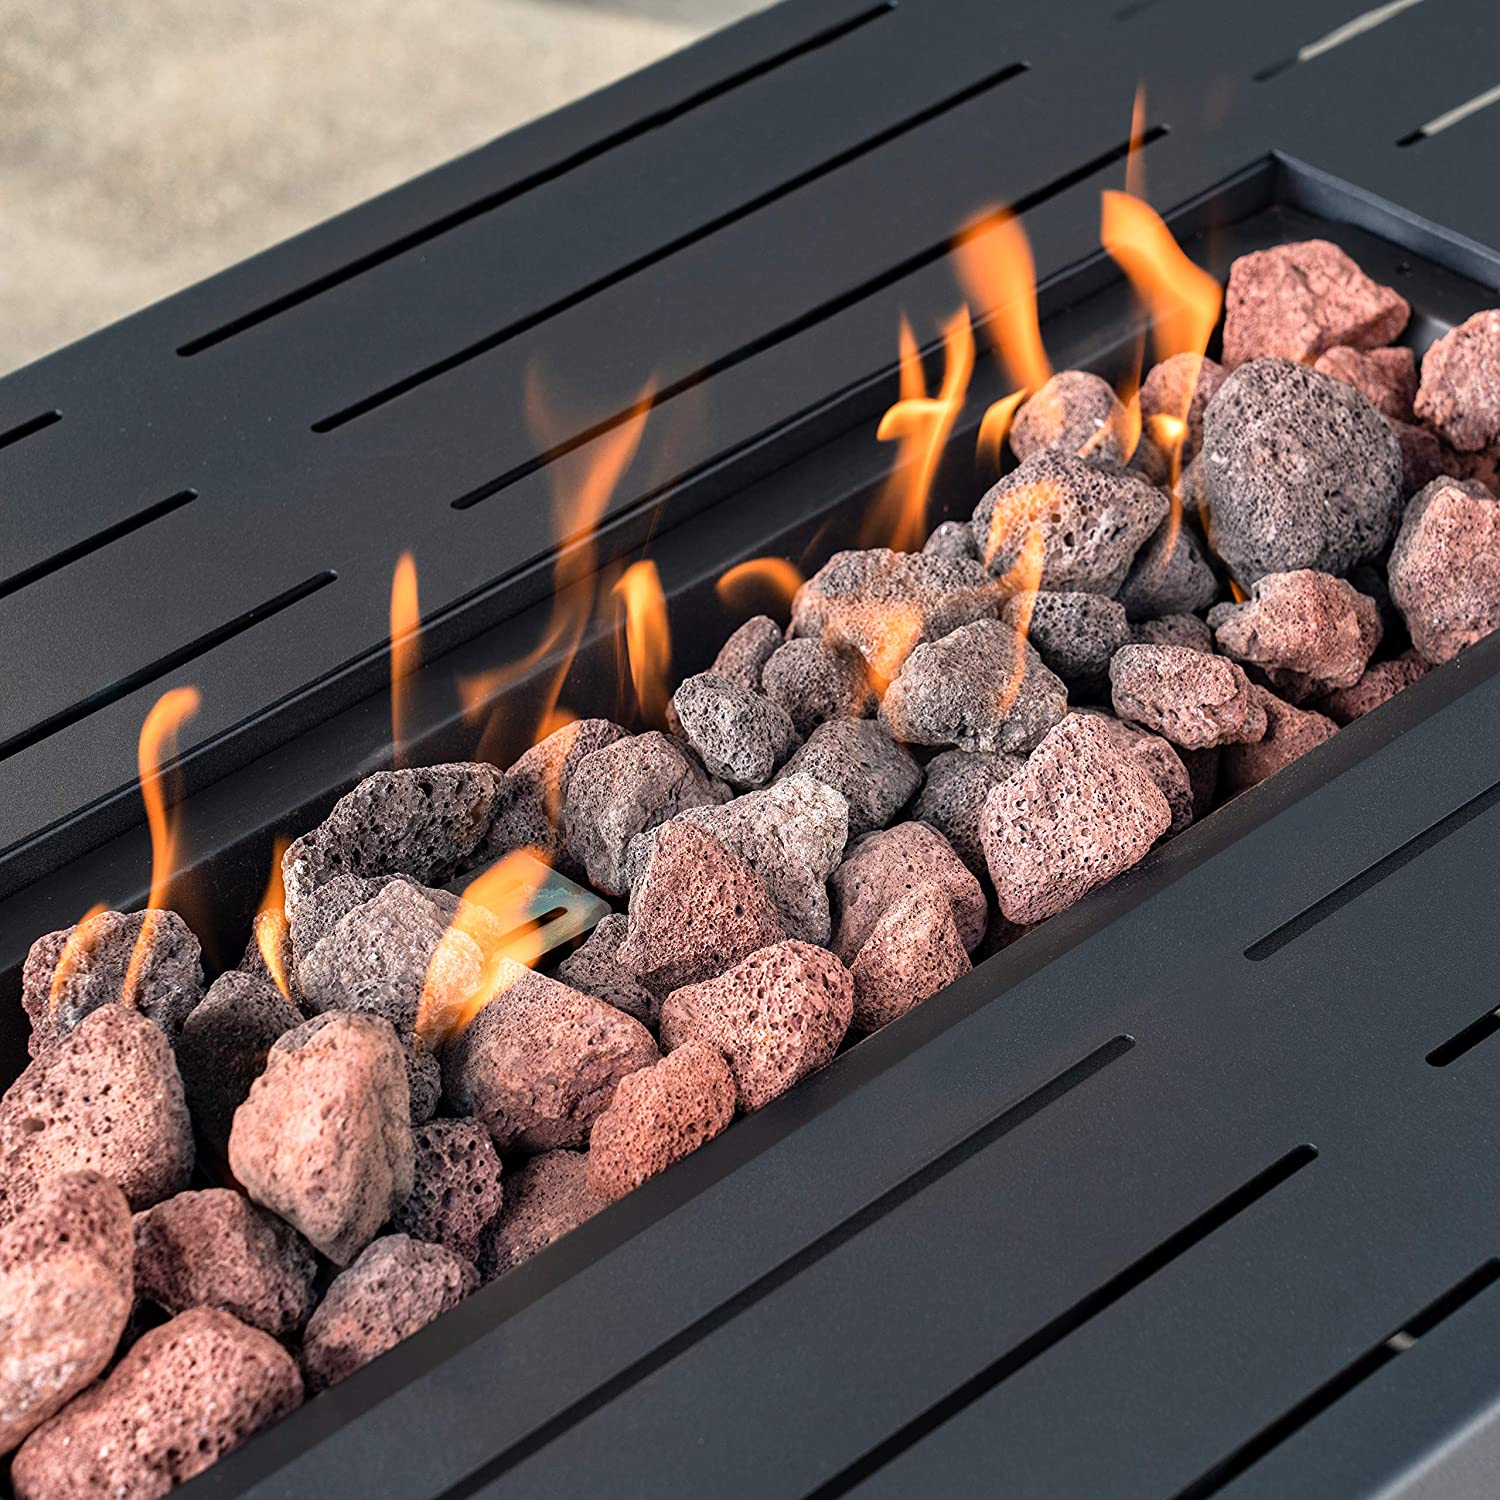 42-inch Rectangular Outdoor Propane Fire Pit Table Gray Steel Slats with 50,000 BTU Stainless Steel Burner Patio Heater with Lava Rocks and Table Insert